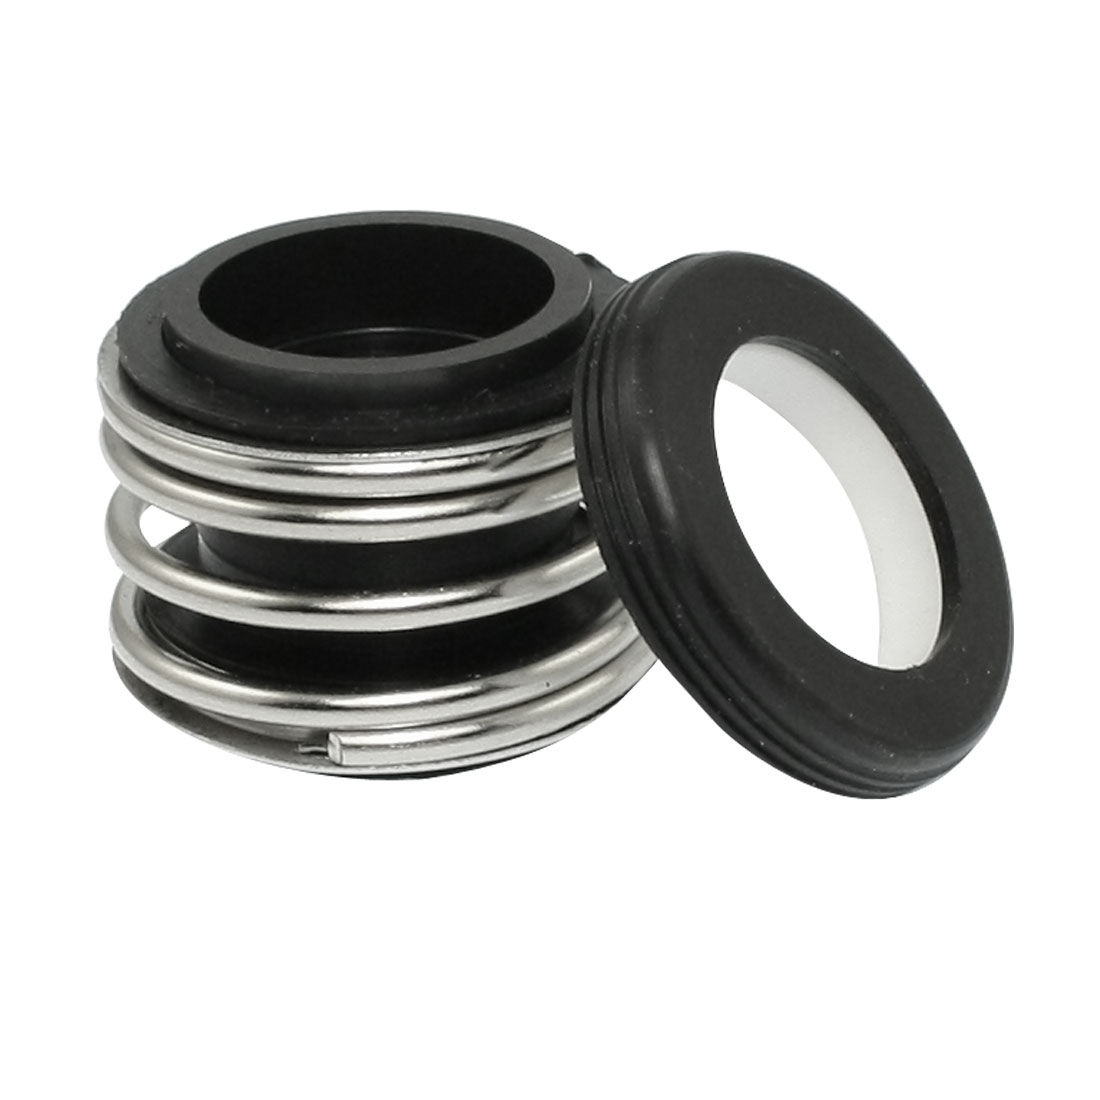 17mm Internal Dia Water Sealing Single Coil Spring Bellows Mechanical Seal